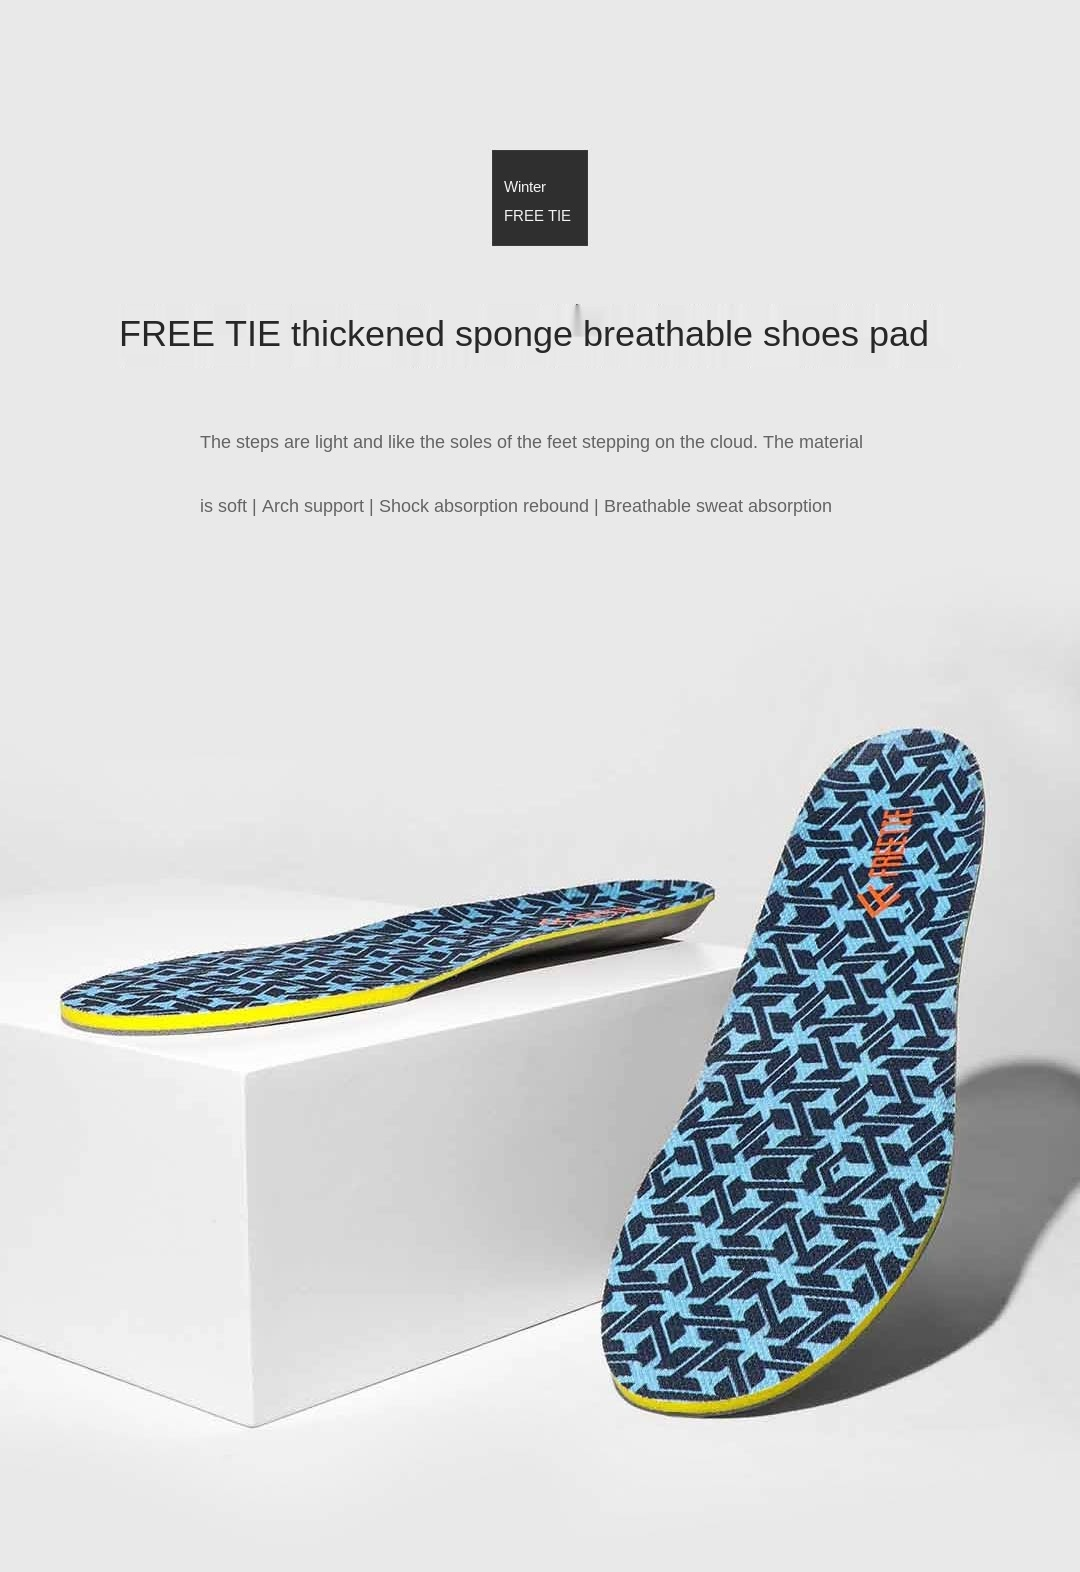 Xiaomi Youping Freetie Memory Cotton Soft Cushioning Insole Slow Rebound Comfortable Fit Breathable Dry Sports Insoles Shoe Pad